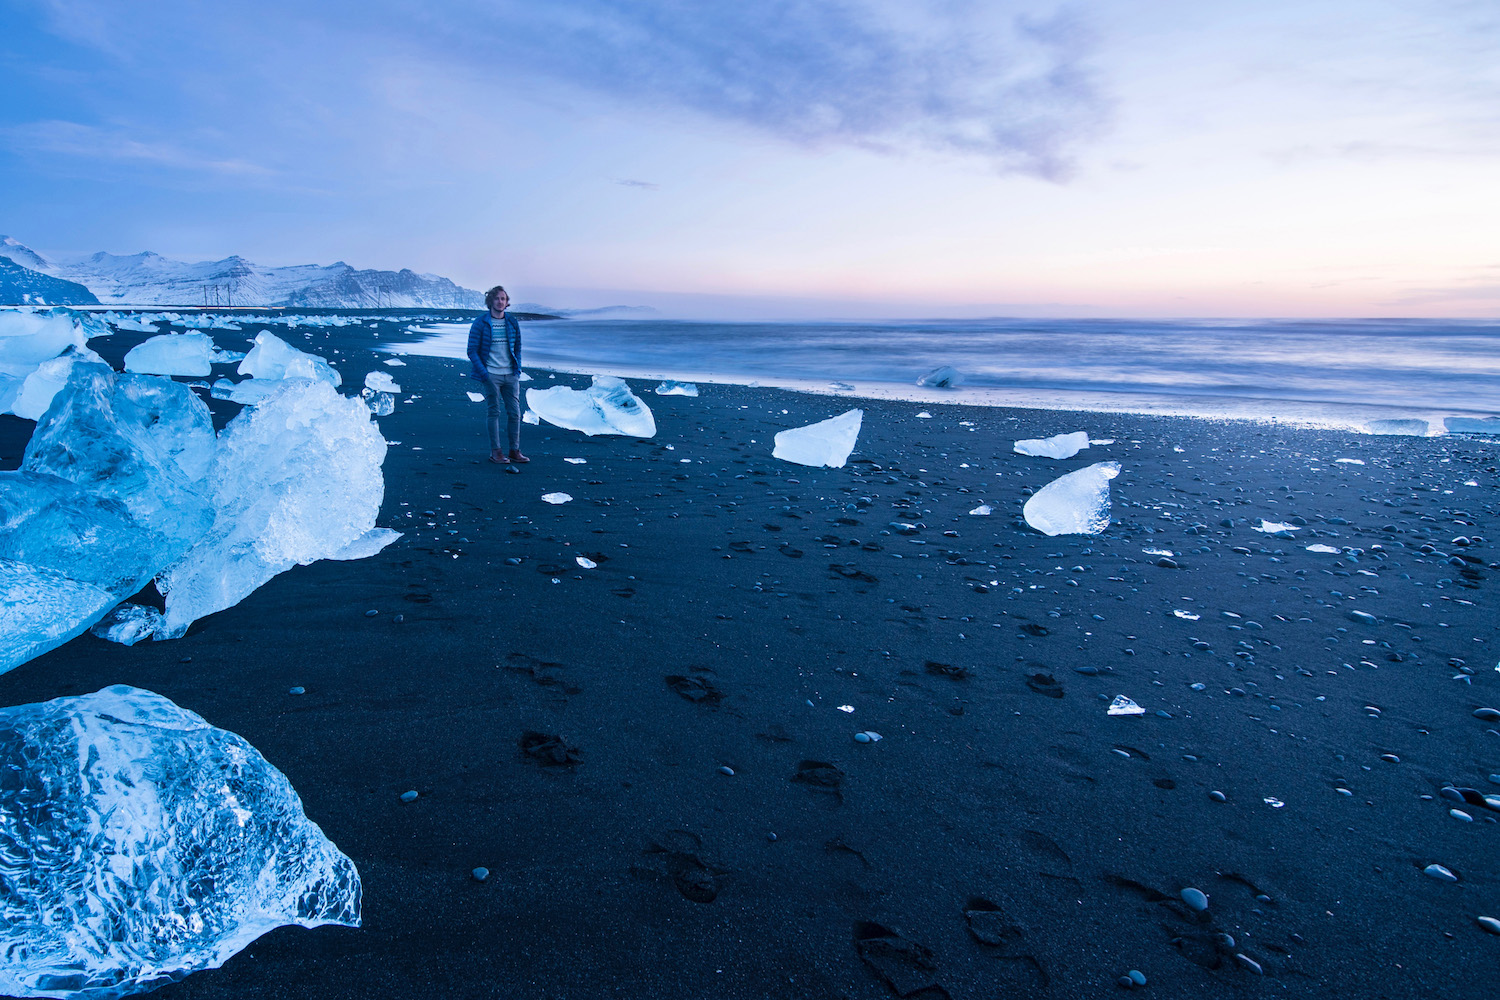 Robert Schrader on Diamond Beach, Iceland